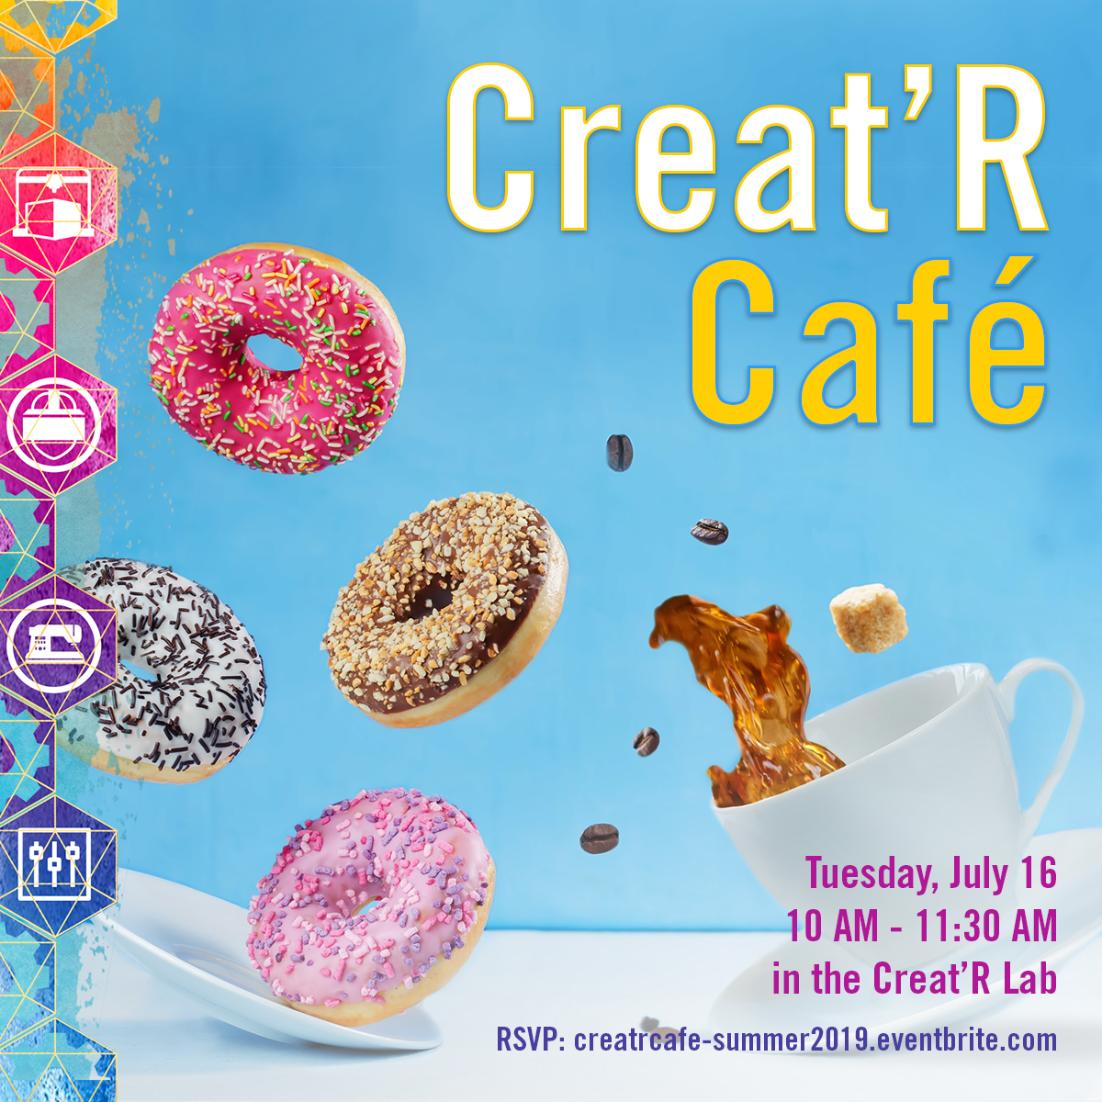 #JoinUs Tues., July 16 in the #CreatRLab for Creat'R Cafe, a campus meetup for #UCRiverside student #innovators & aspiring #entrepreneurs to discuss ideas with like-minded peers & #mentors, and learn about #prototyping. Space is limited, please RSVP: http://creatrcafe-summer2019.eventbrite.com